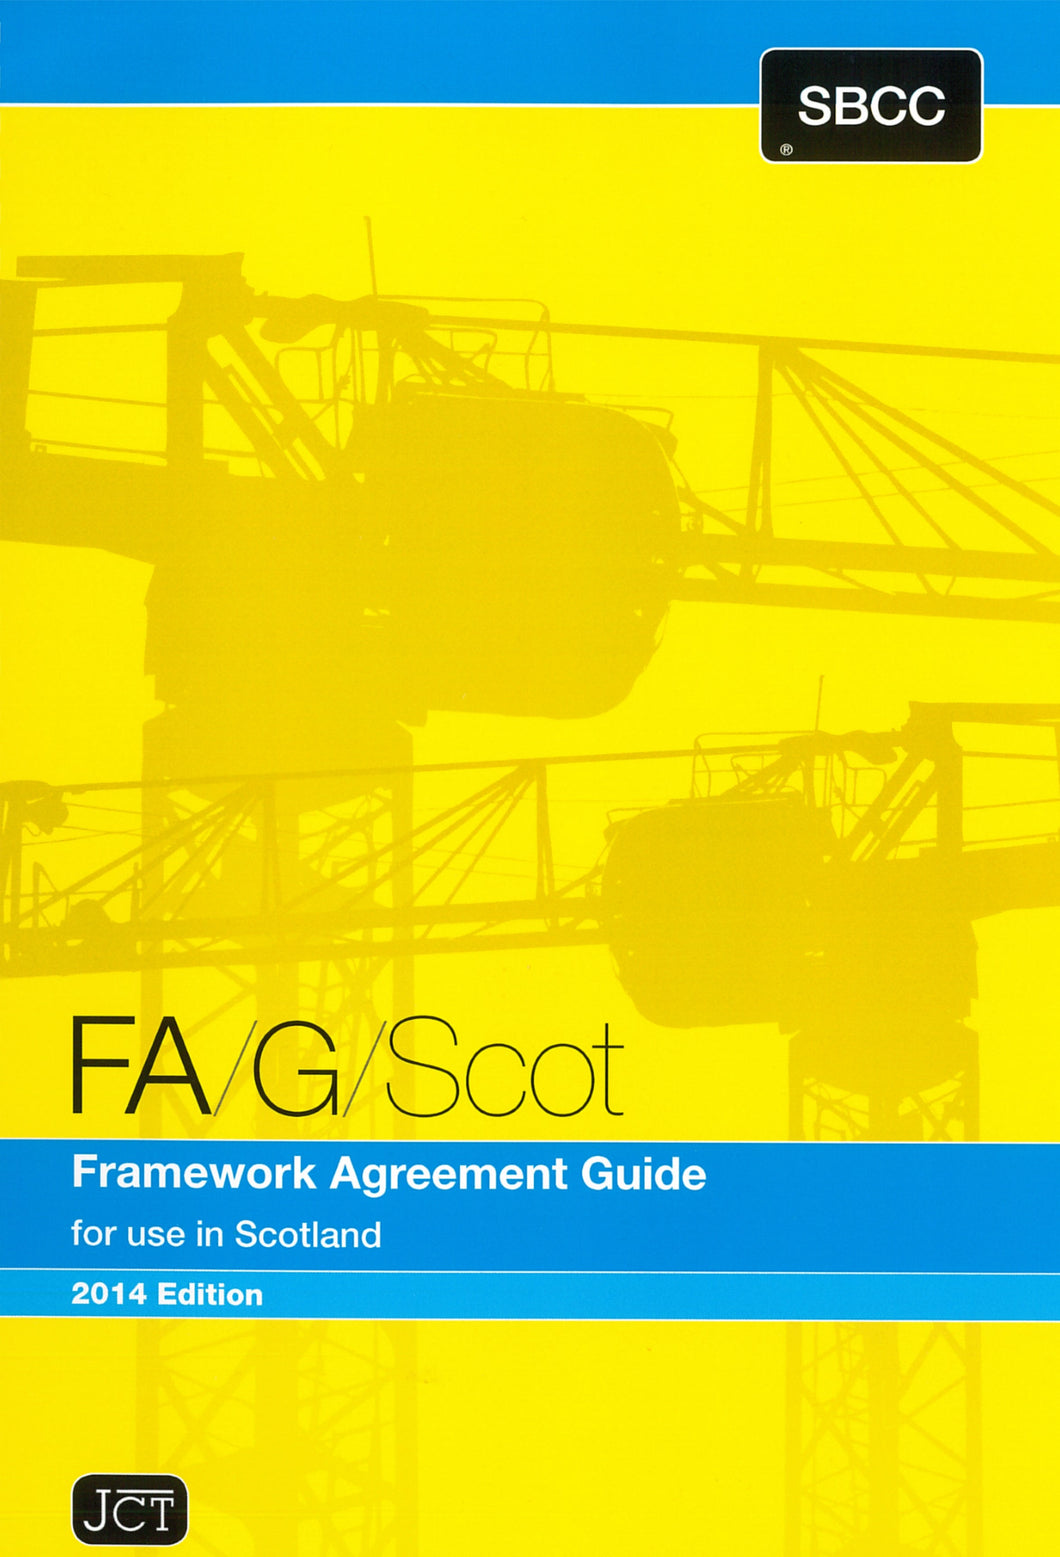 Framework Agreement Guide for Use in Scotland 2014 Edition